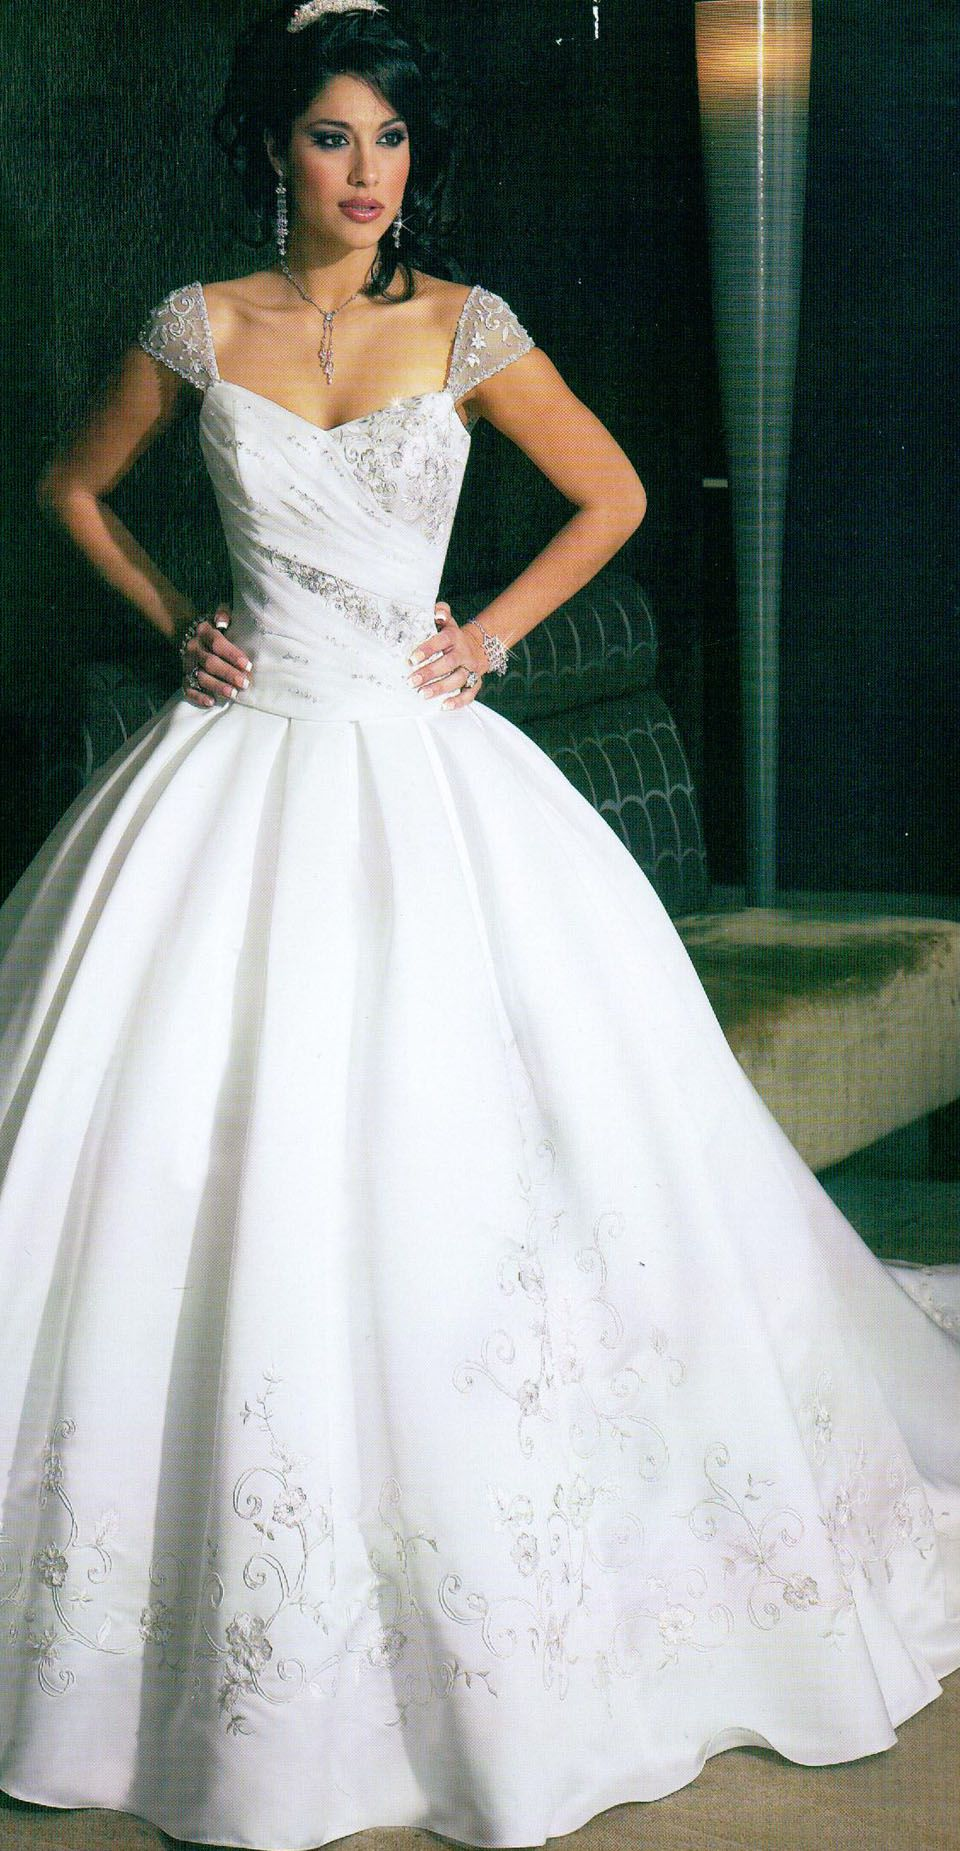 Wedding Dresses for Rent In Las Vegas - Best Dresses for Wedding ...